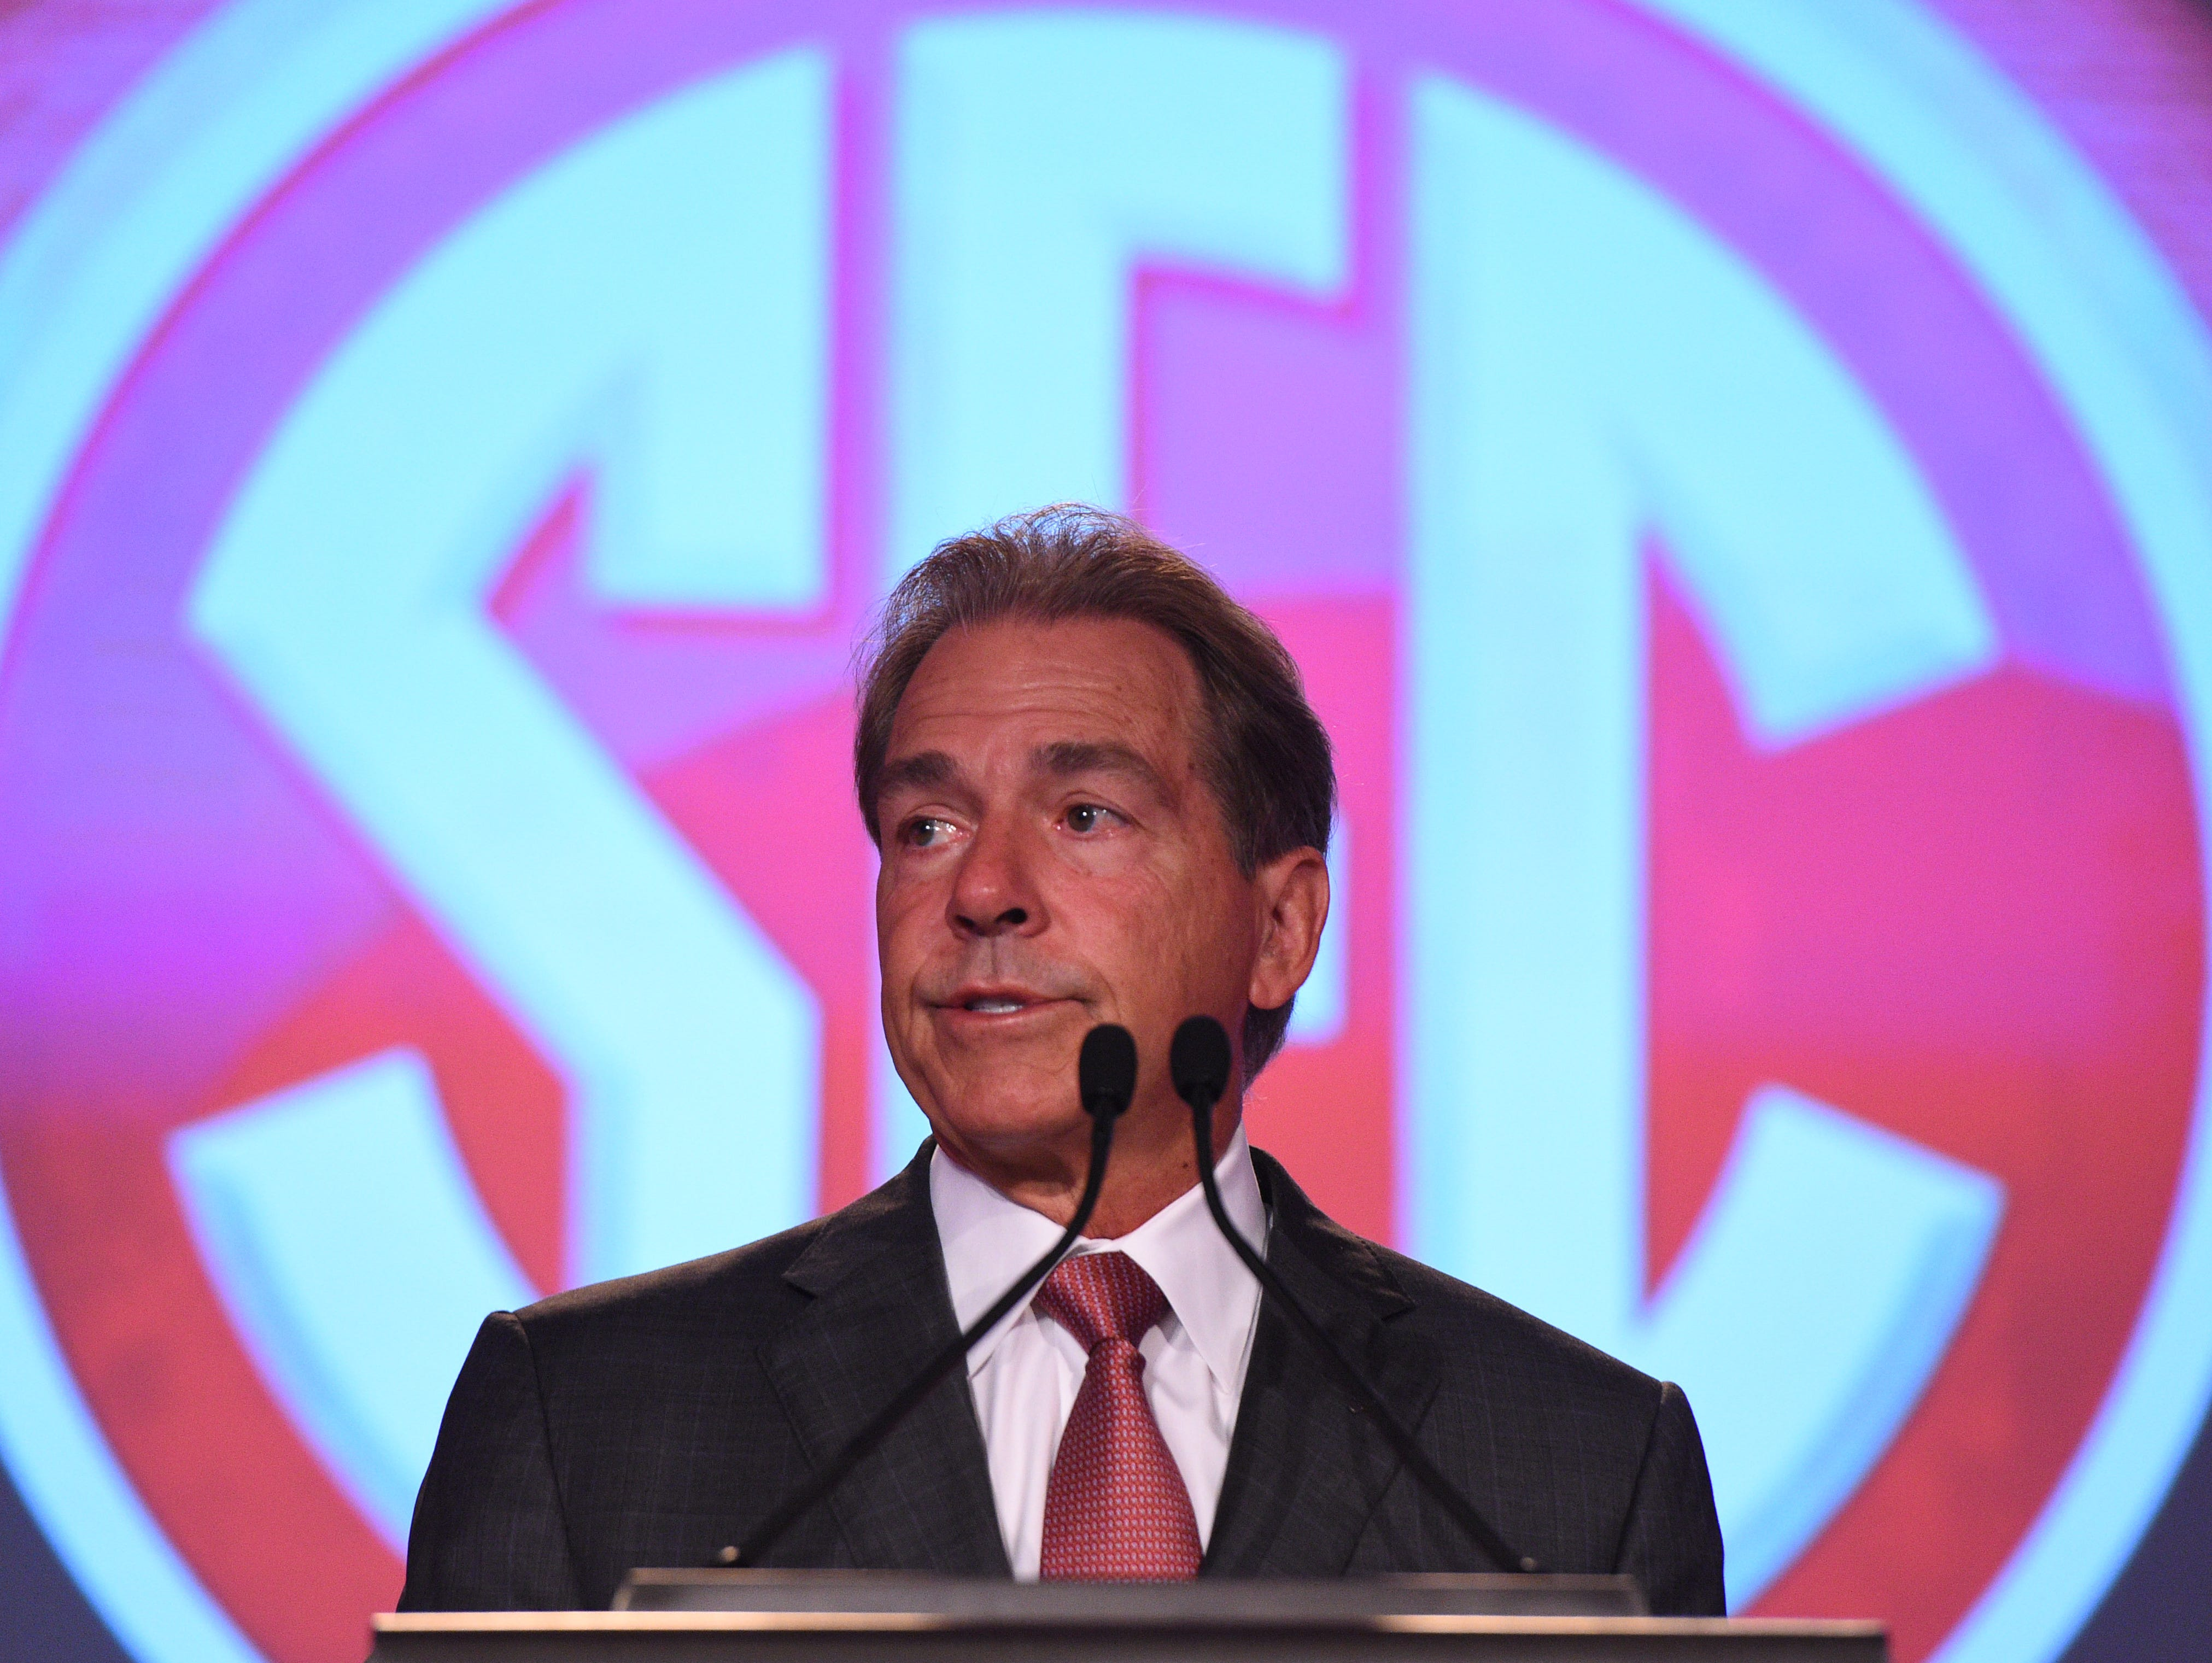 Jul 12, 2017; Hoover, AL, USA; Alabama Crimson Tide head coach Nick Saban speaks to media during SEC Media Days at the Hyatt Regency Birmingham-The Winfrey Hotel. Mandatory Credit: Adam Hagy-USA TODAY Sports